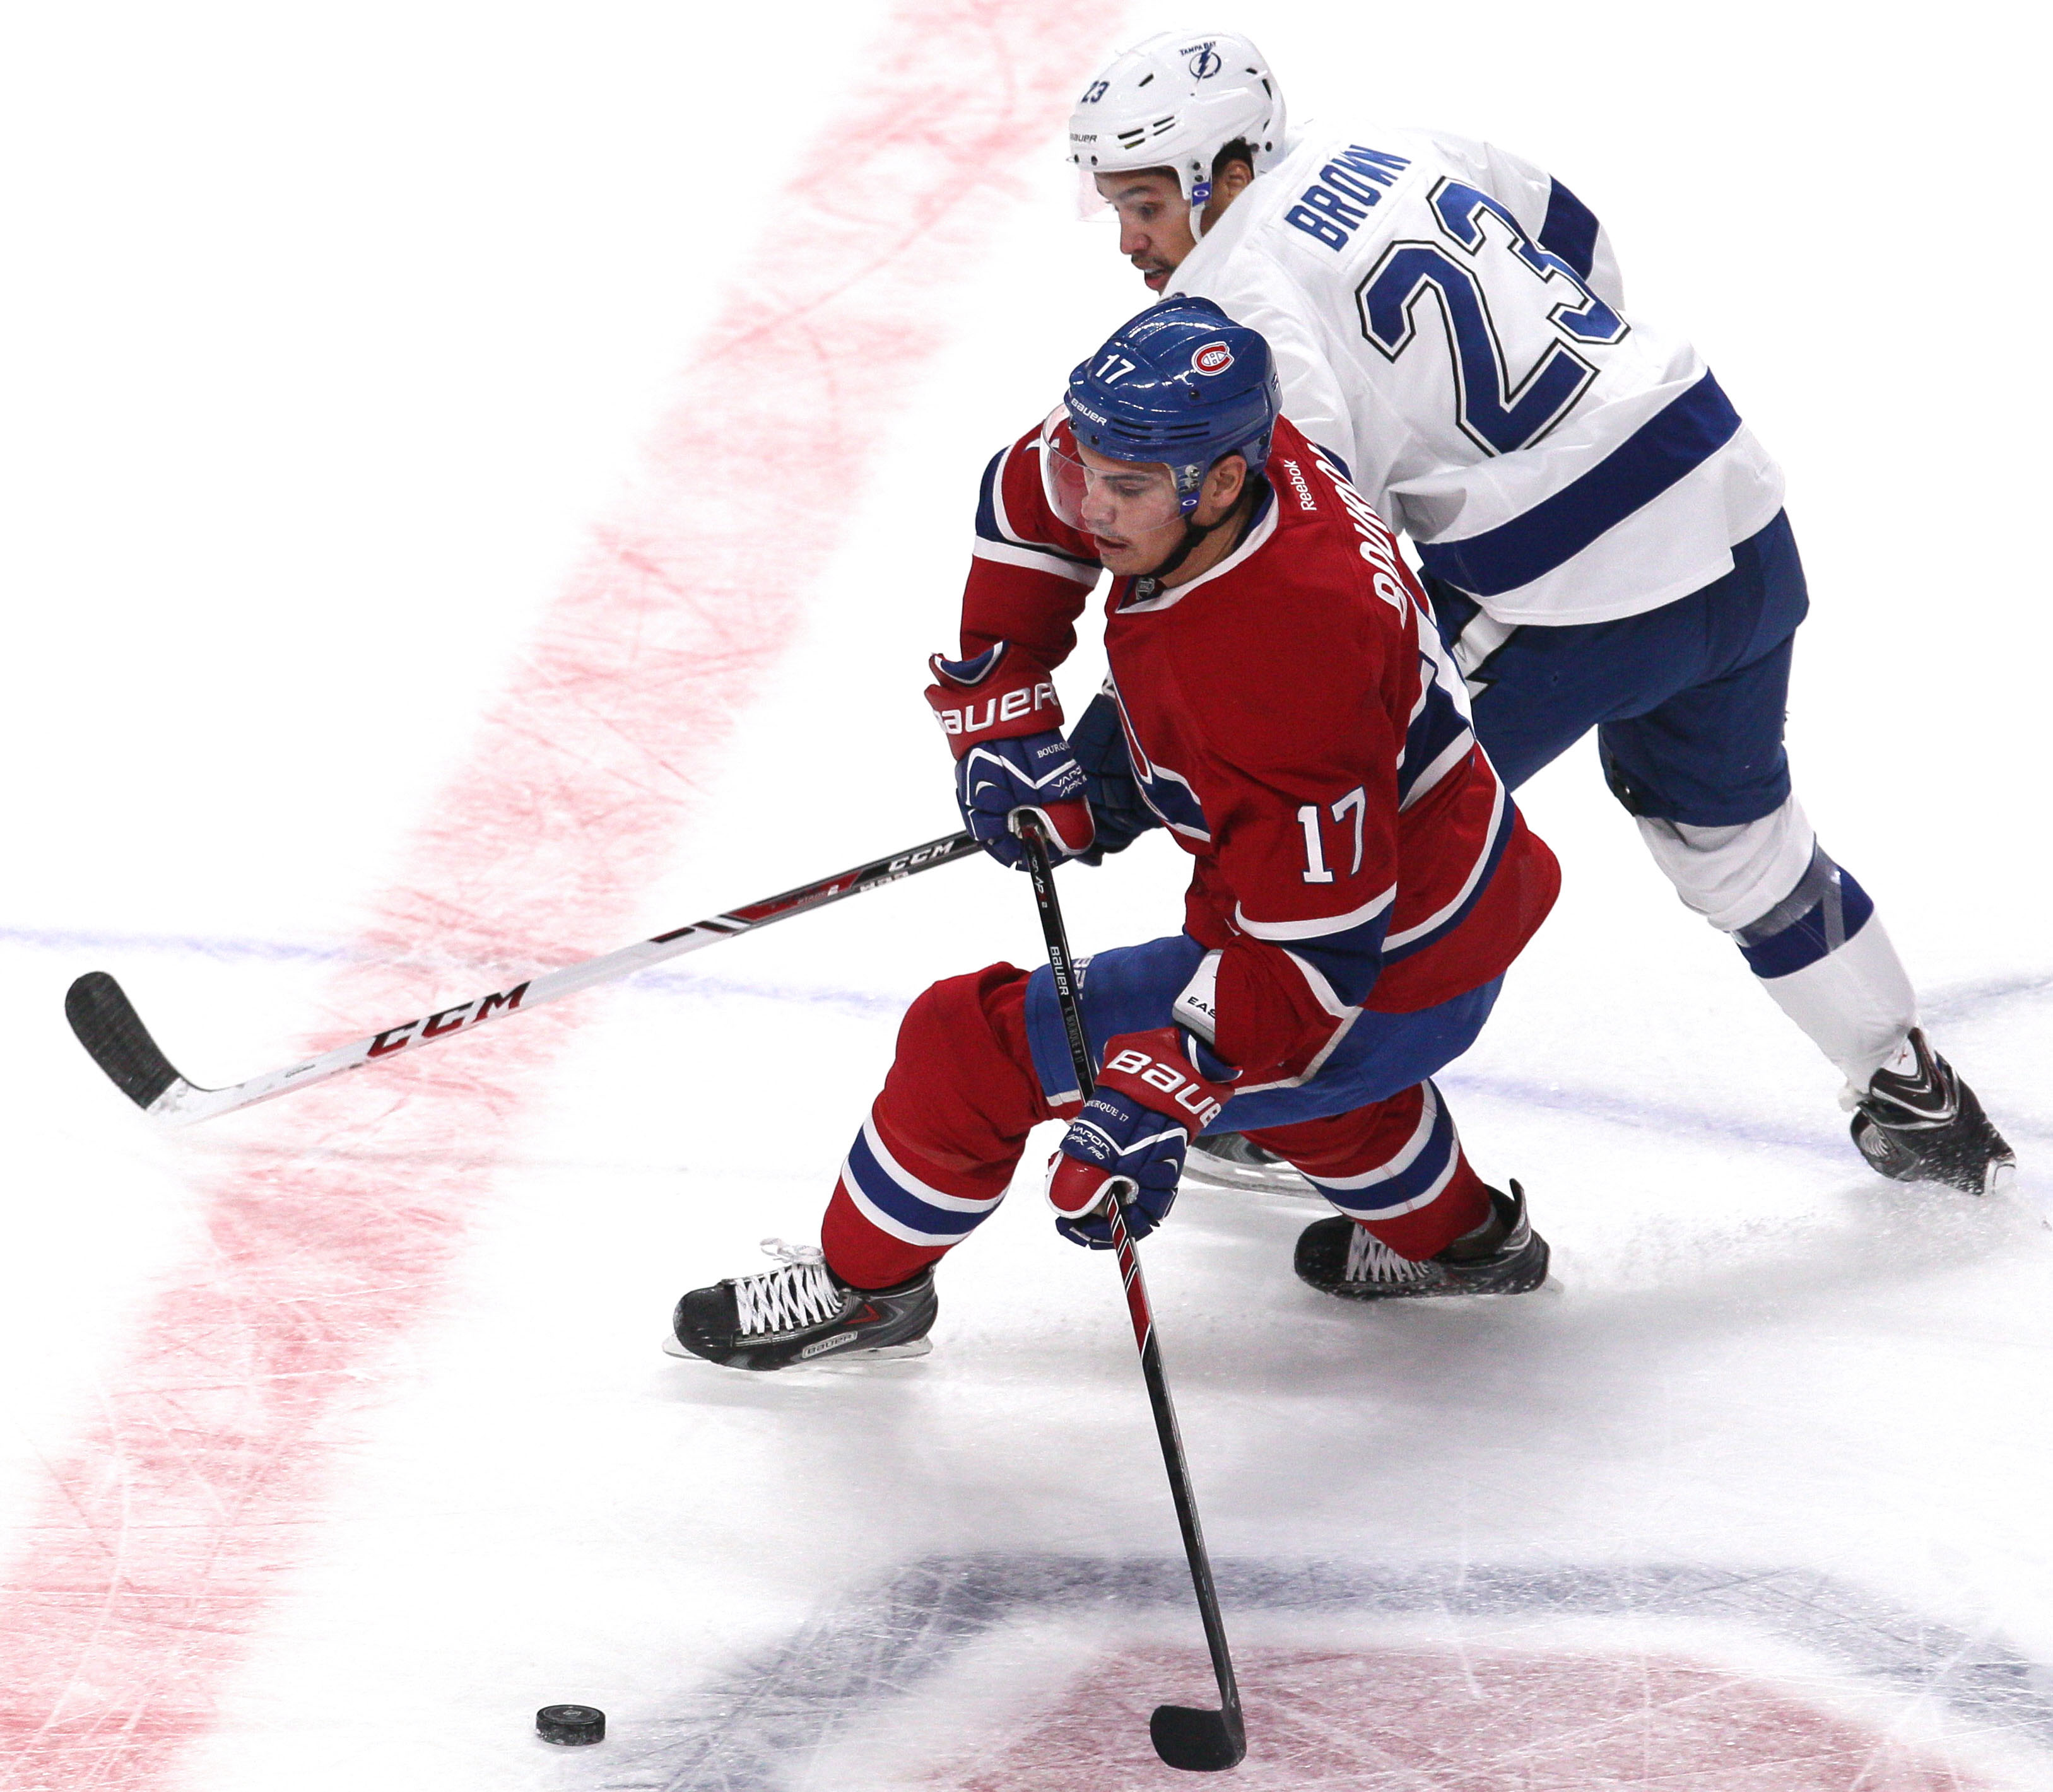 Rene Bourque has been a major disappointment since his acquisition.